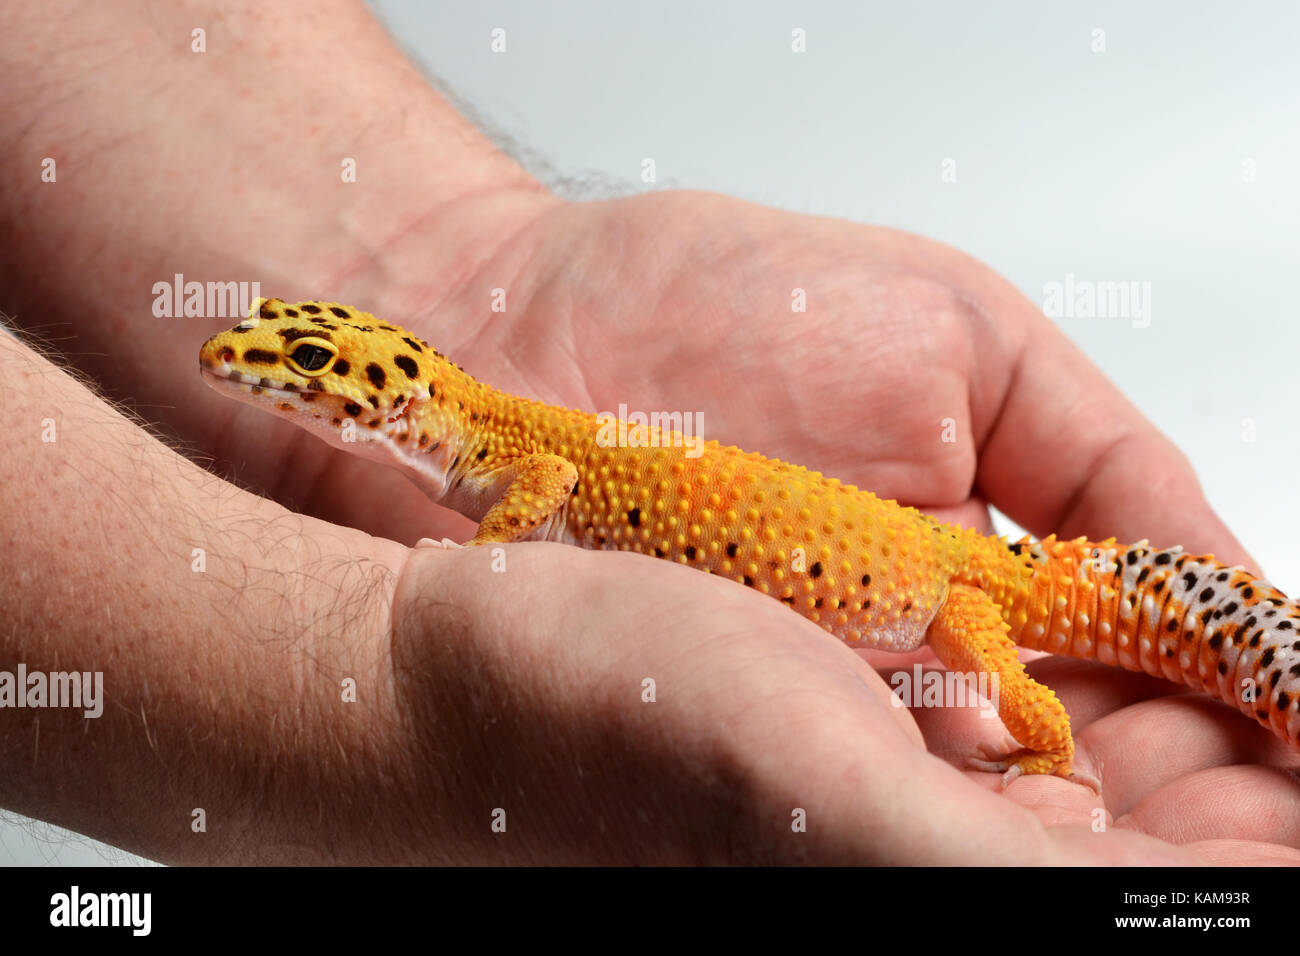 A Leopard Gecko Eublepharis Macularius Being Held In Studio With White Background